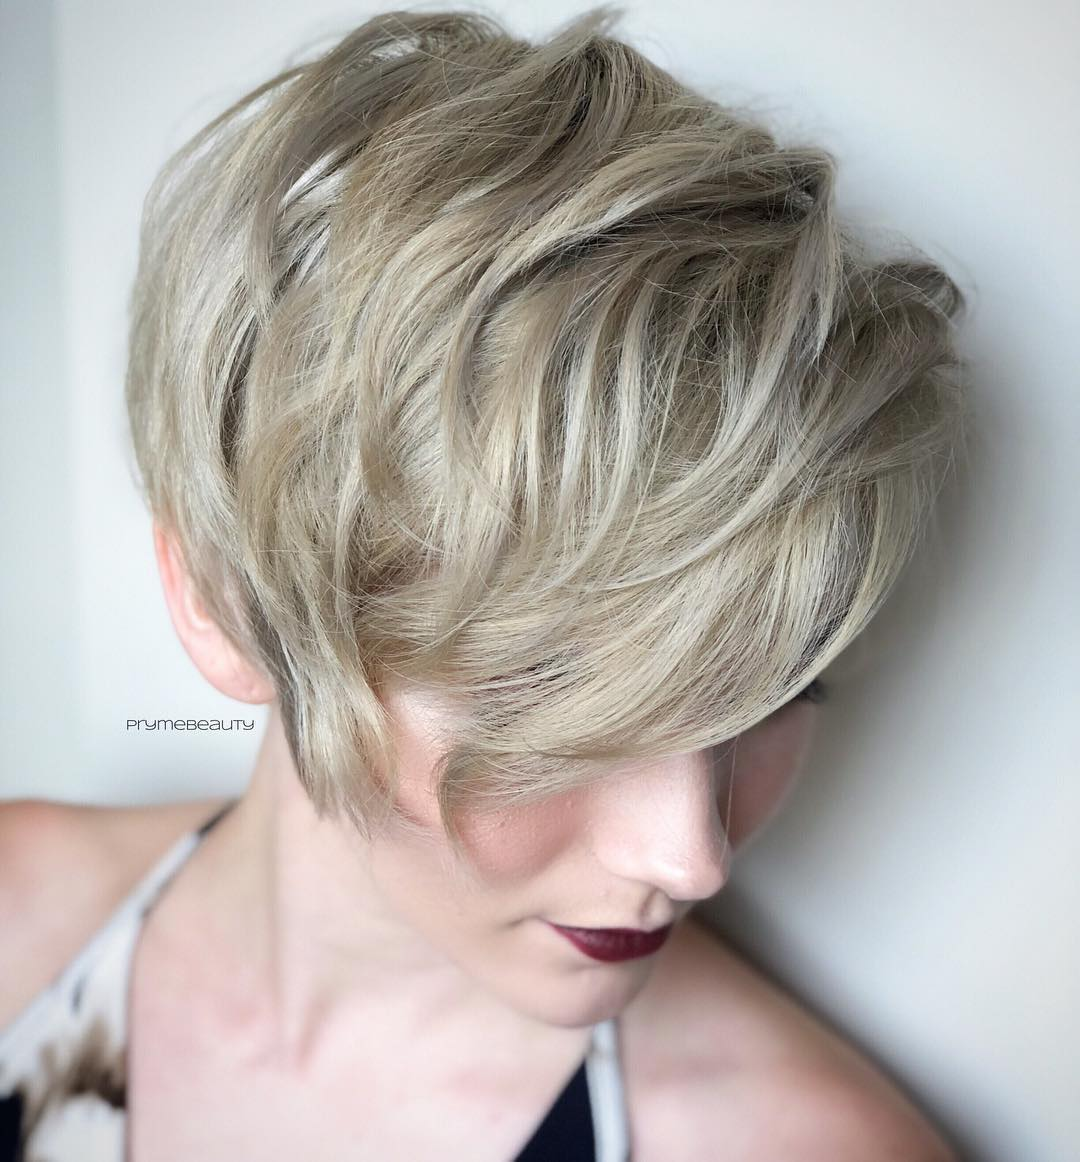 Top 10 Trendy, Low-Maintenance Short Layered Hairstyles 2020